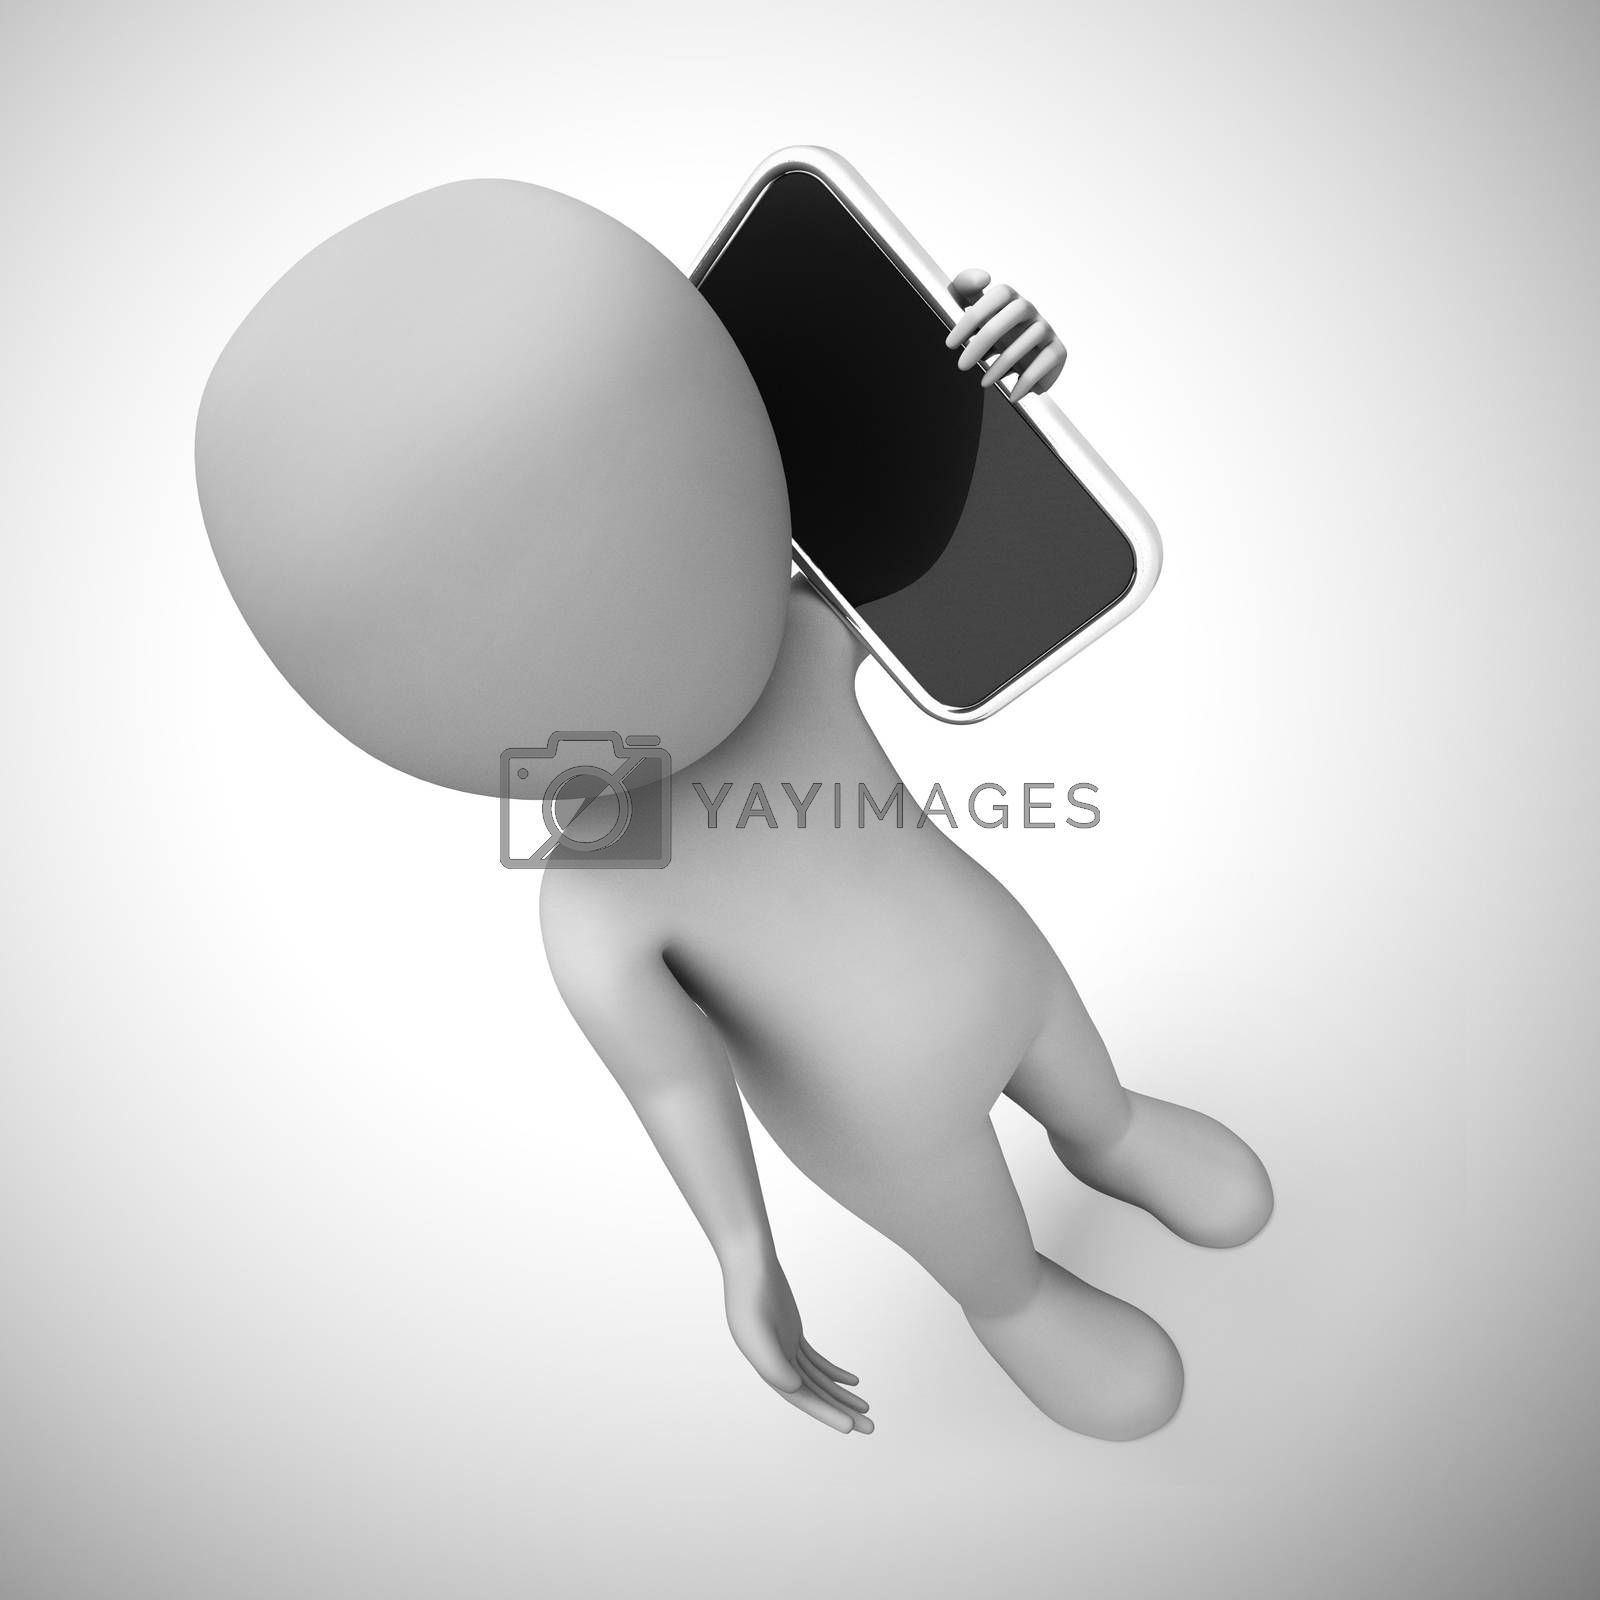 Talking on a mobile phone or cellular device for business or personal. Chatting discussing and conversing - 3d illustration